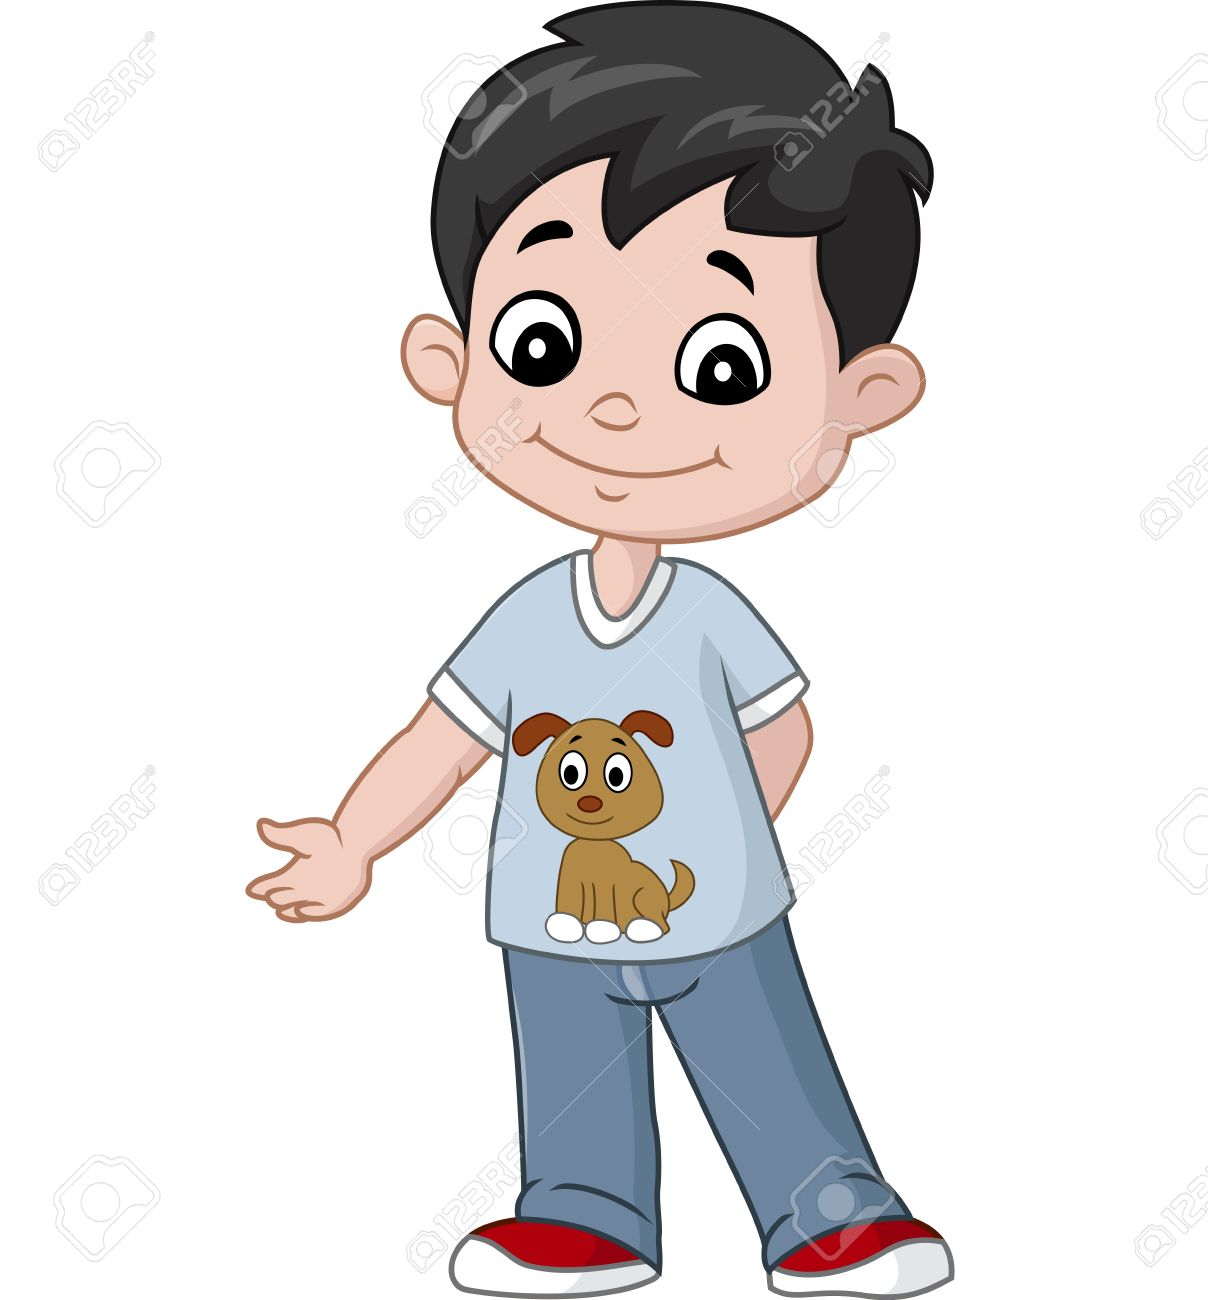 happy little boy cartoon royalty free cliparts vectors and stock rh 123rf com little boy cartoon picture little boy cartoon videos